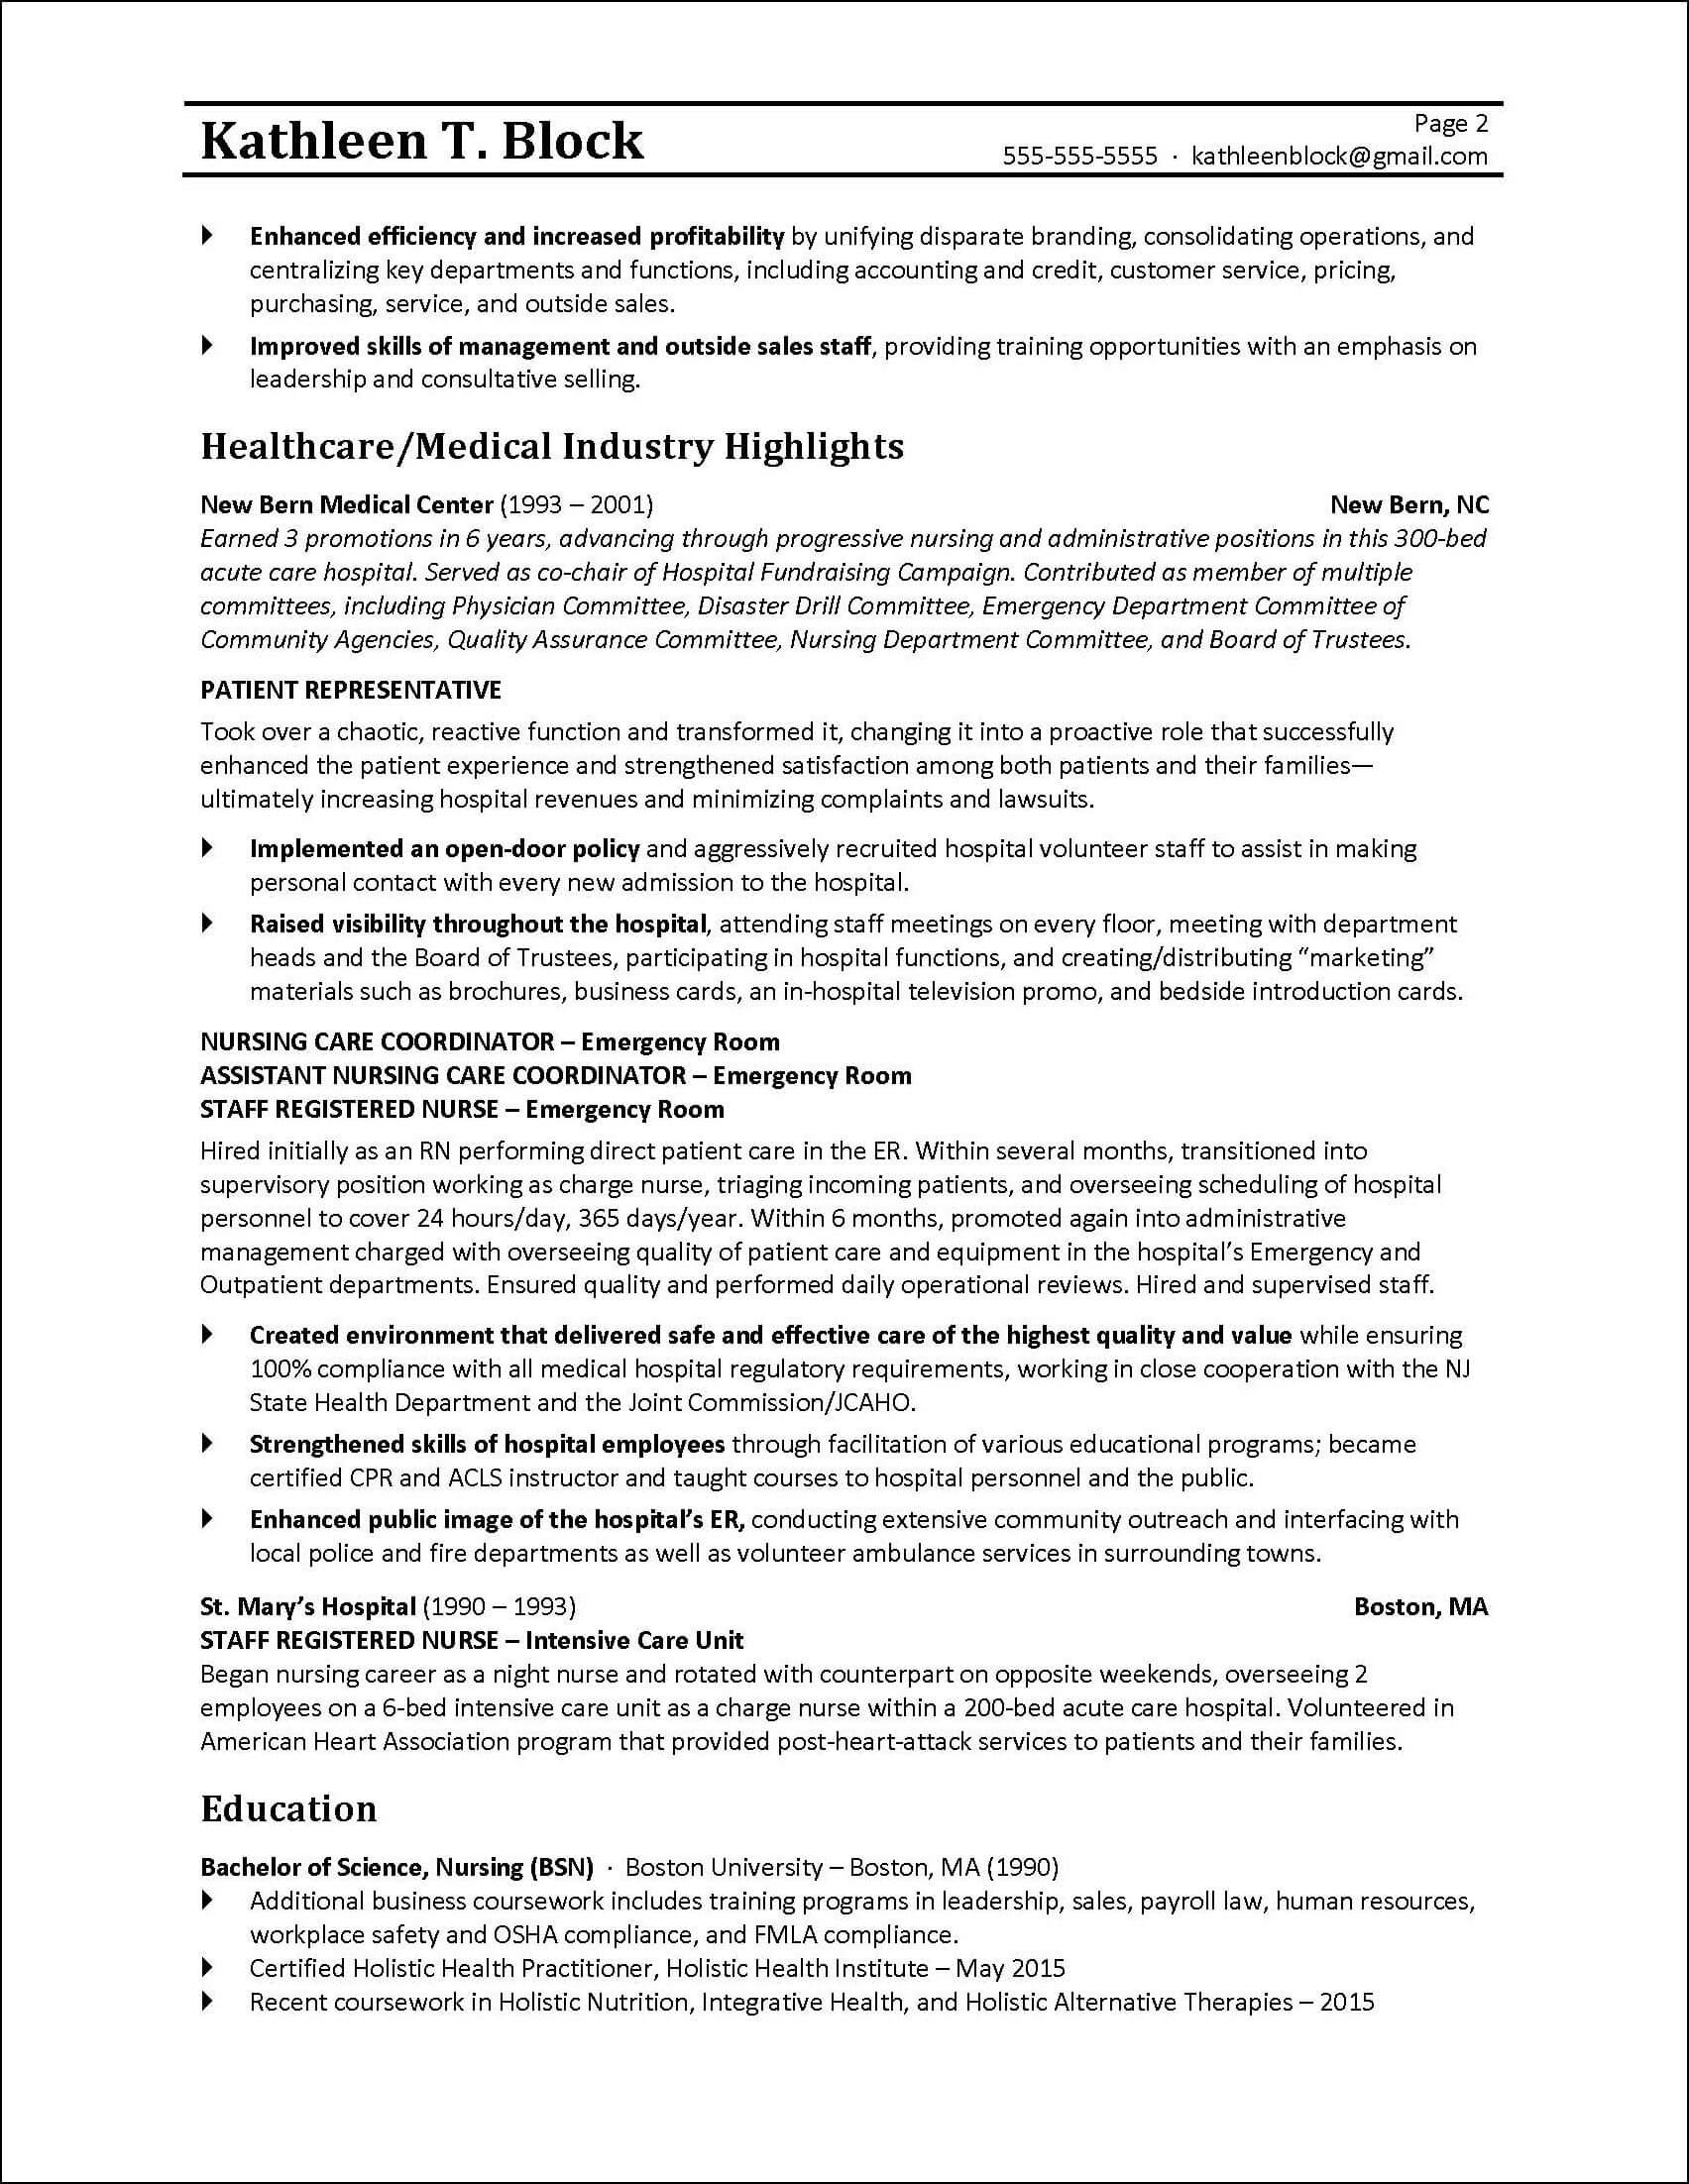 Management Skills For A Resume Management Resume Sample Healthcare Industry